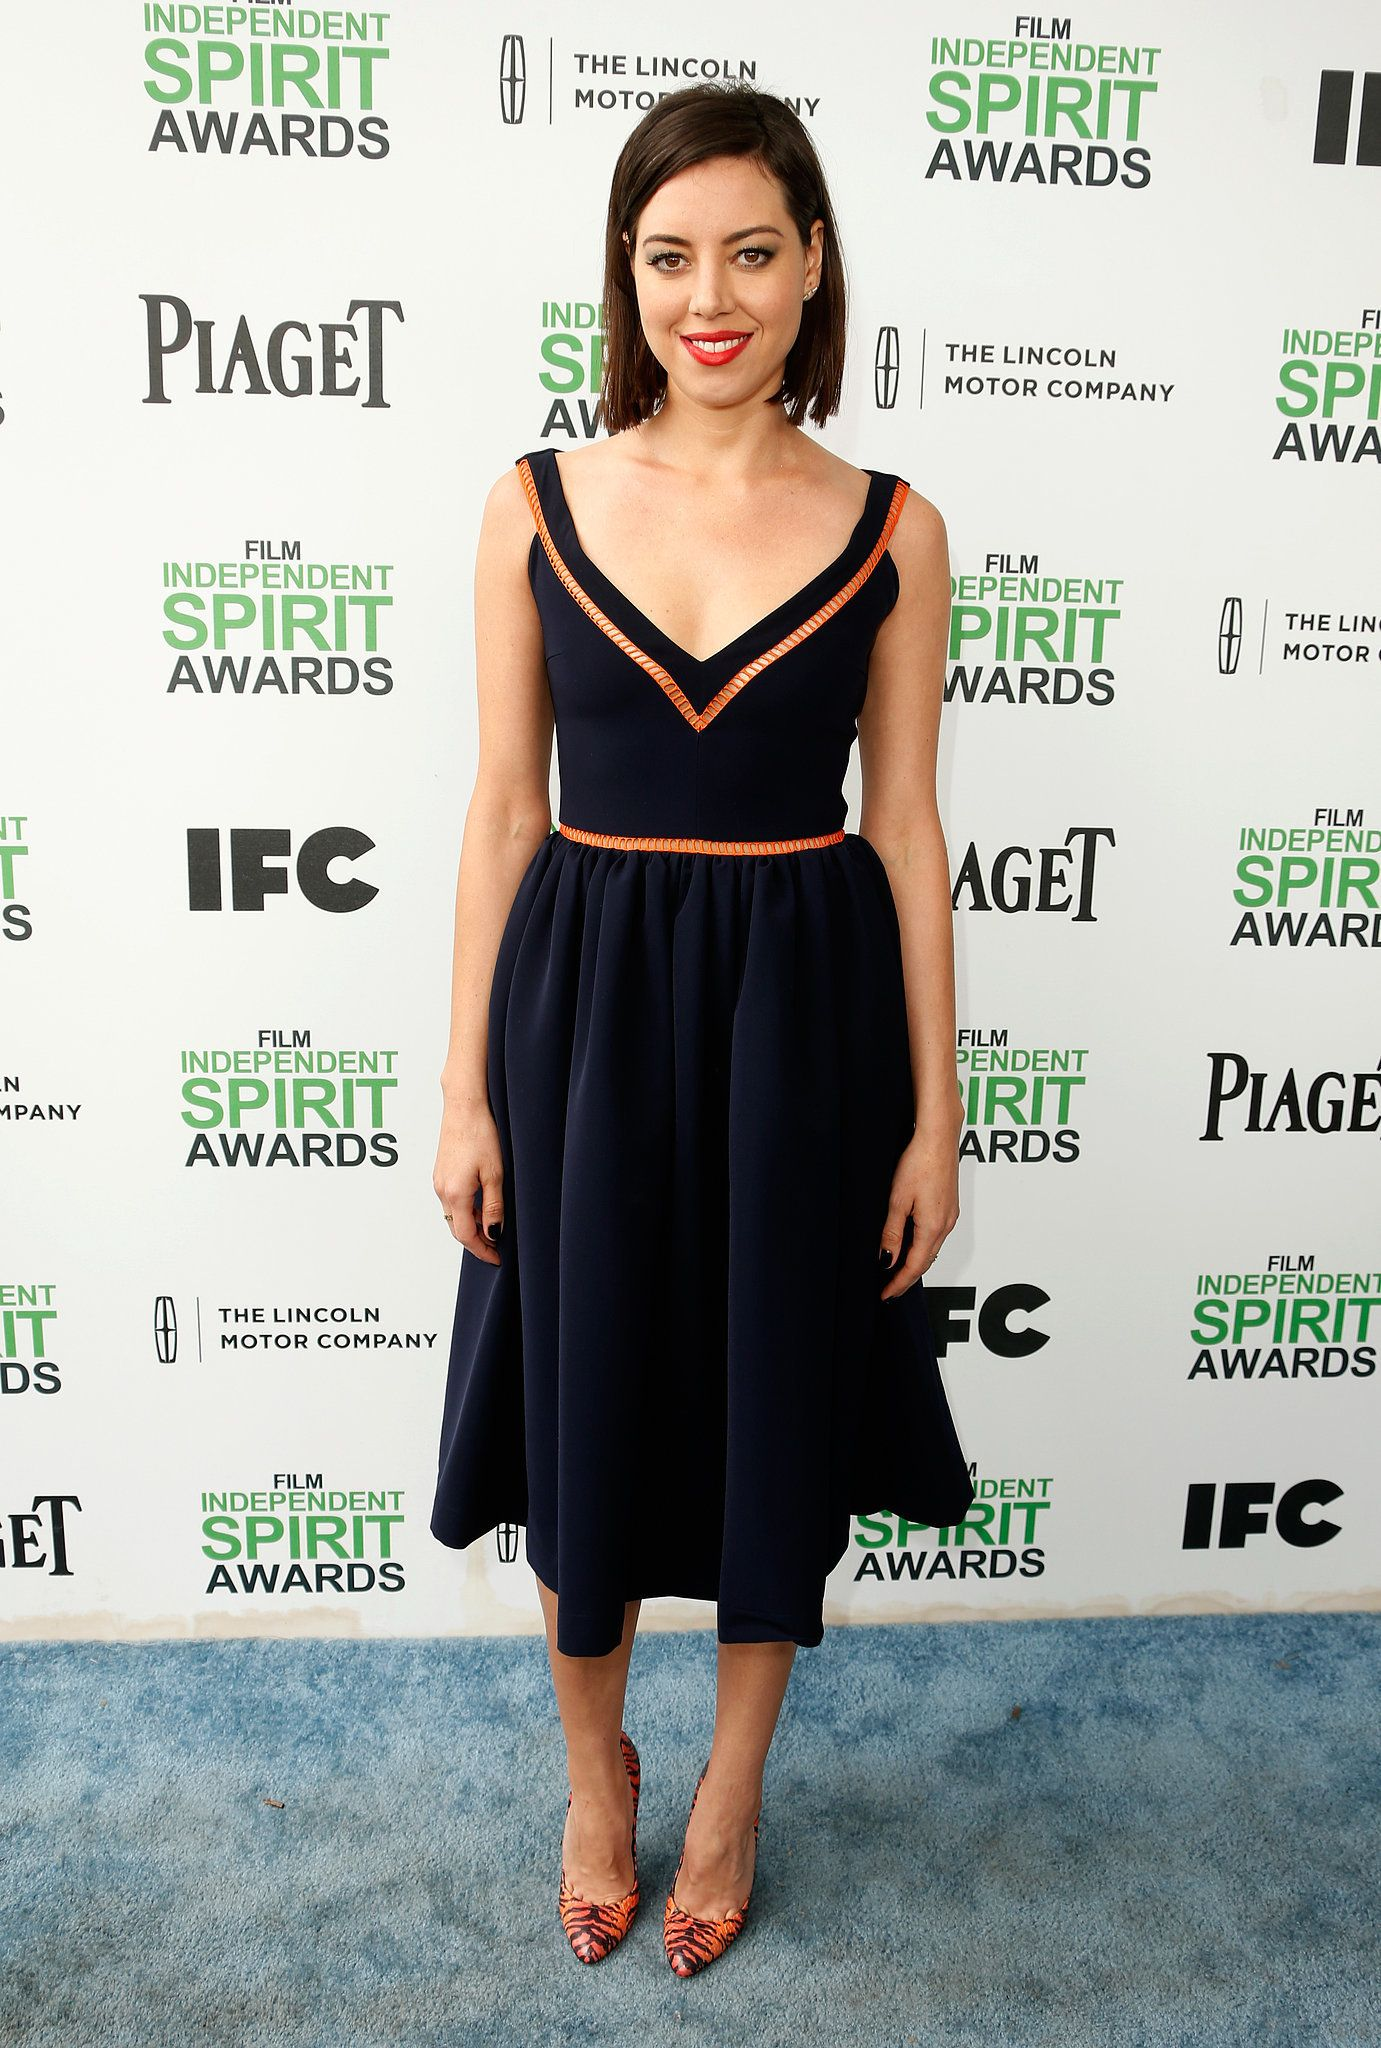 Basic black? Not Aubrey Plaza's Preen LBD.